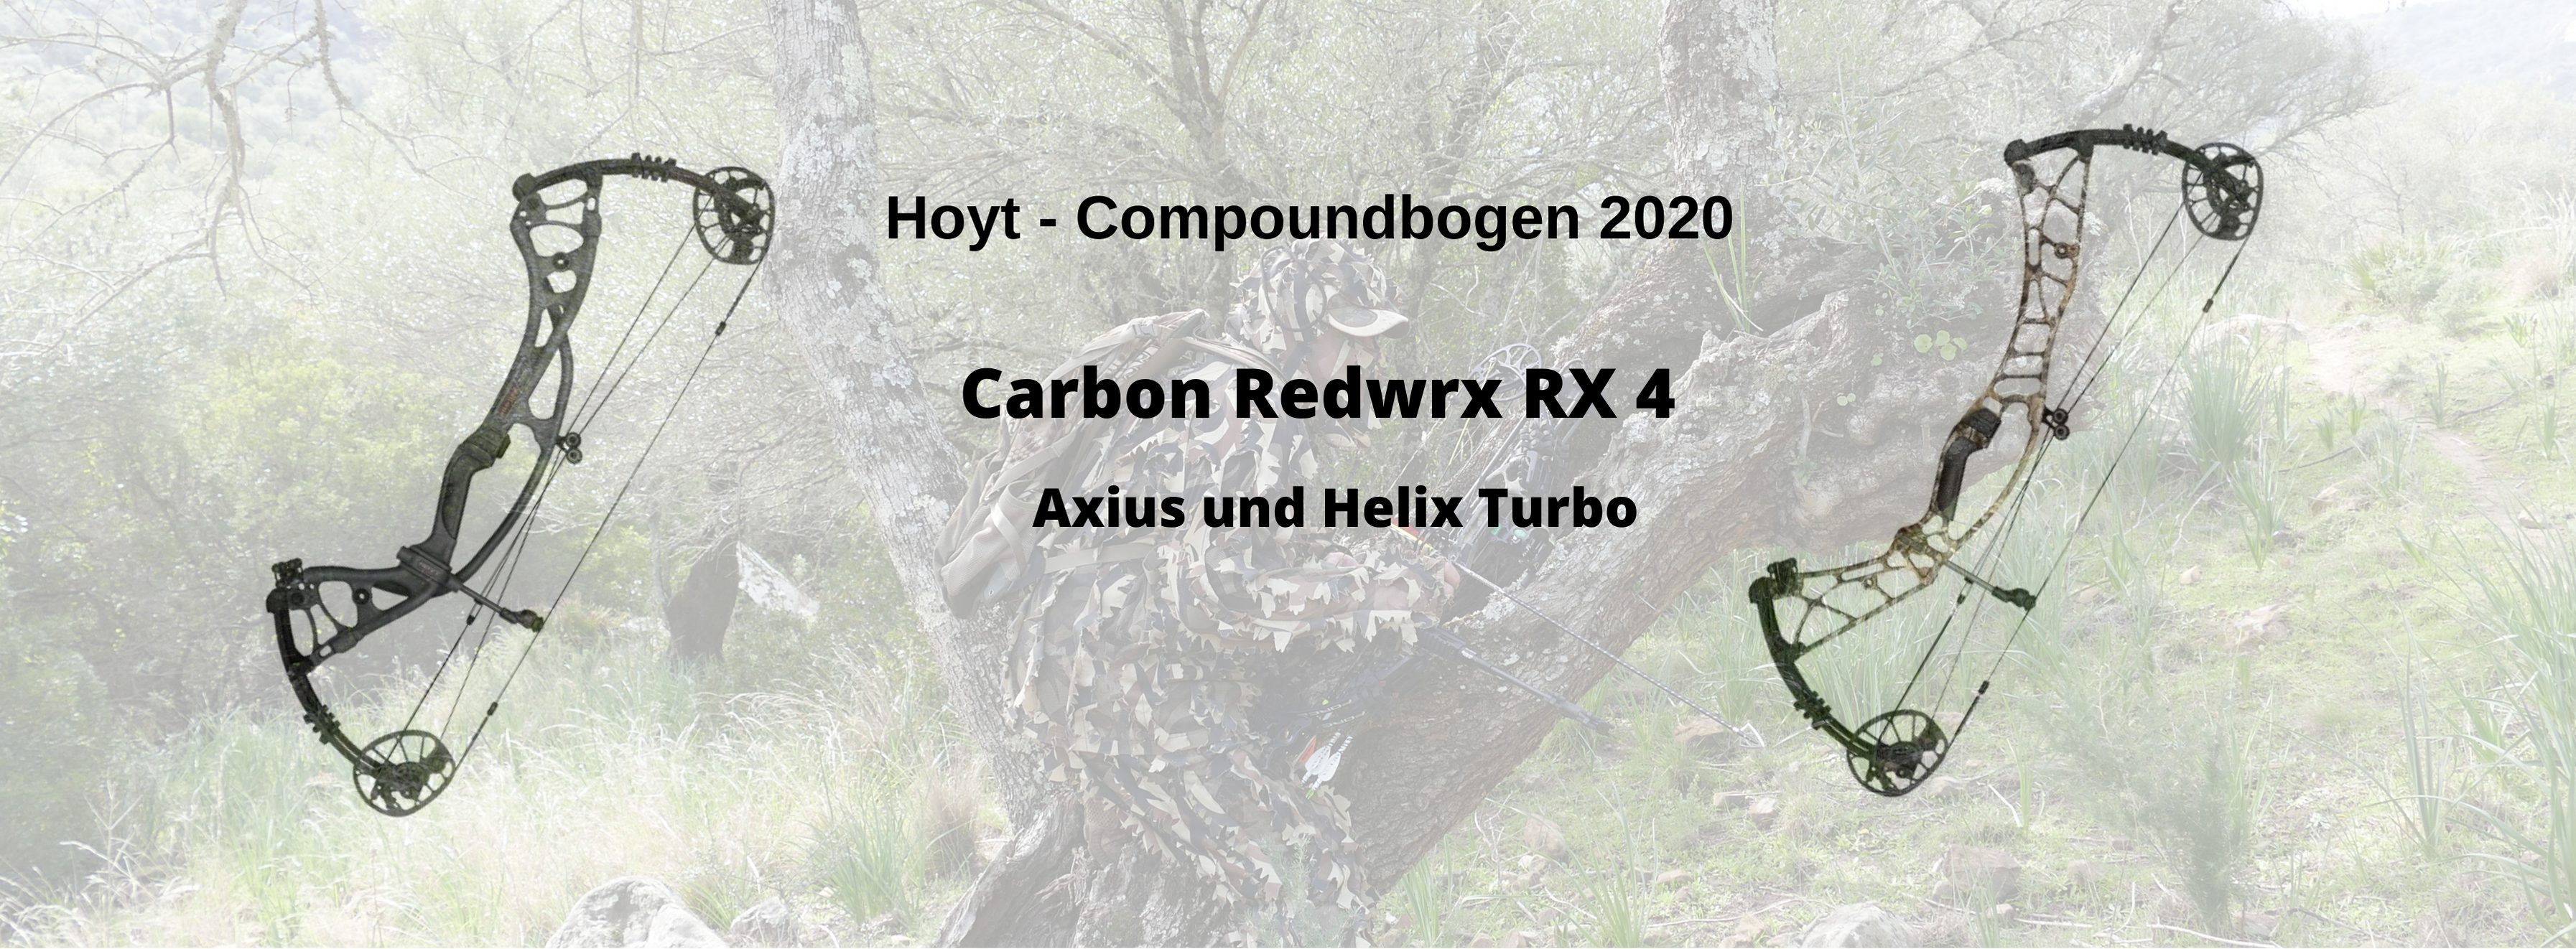 Hoyt Compoundbogen 2020